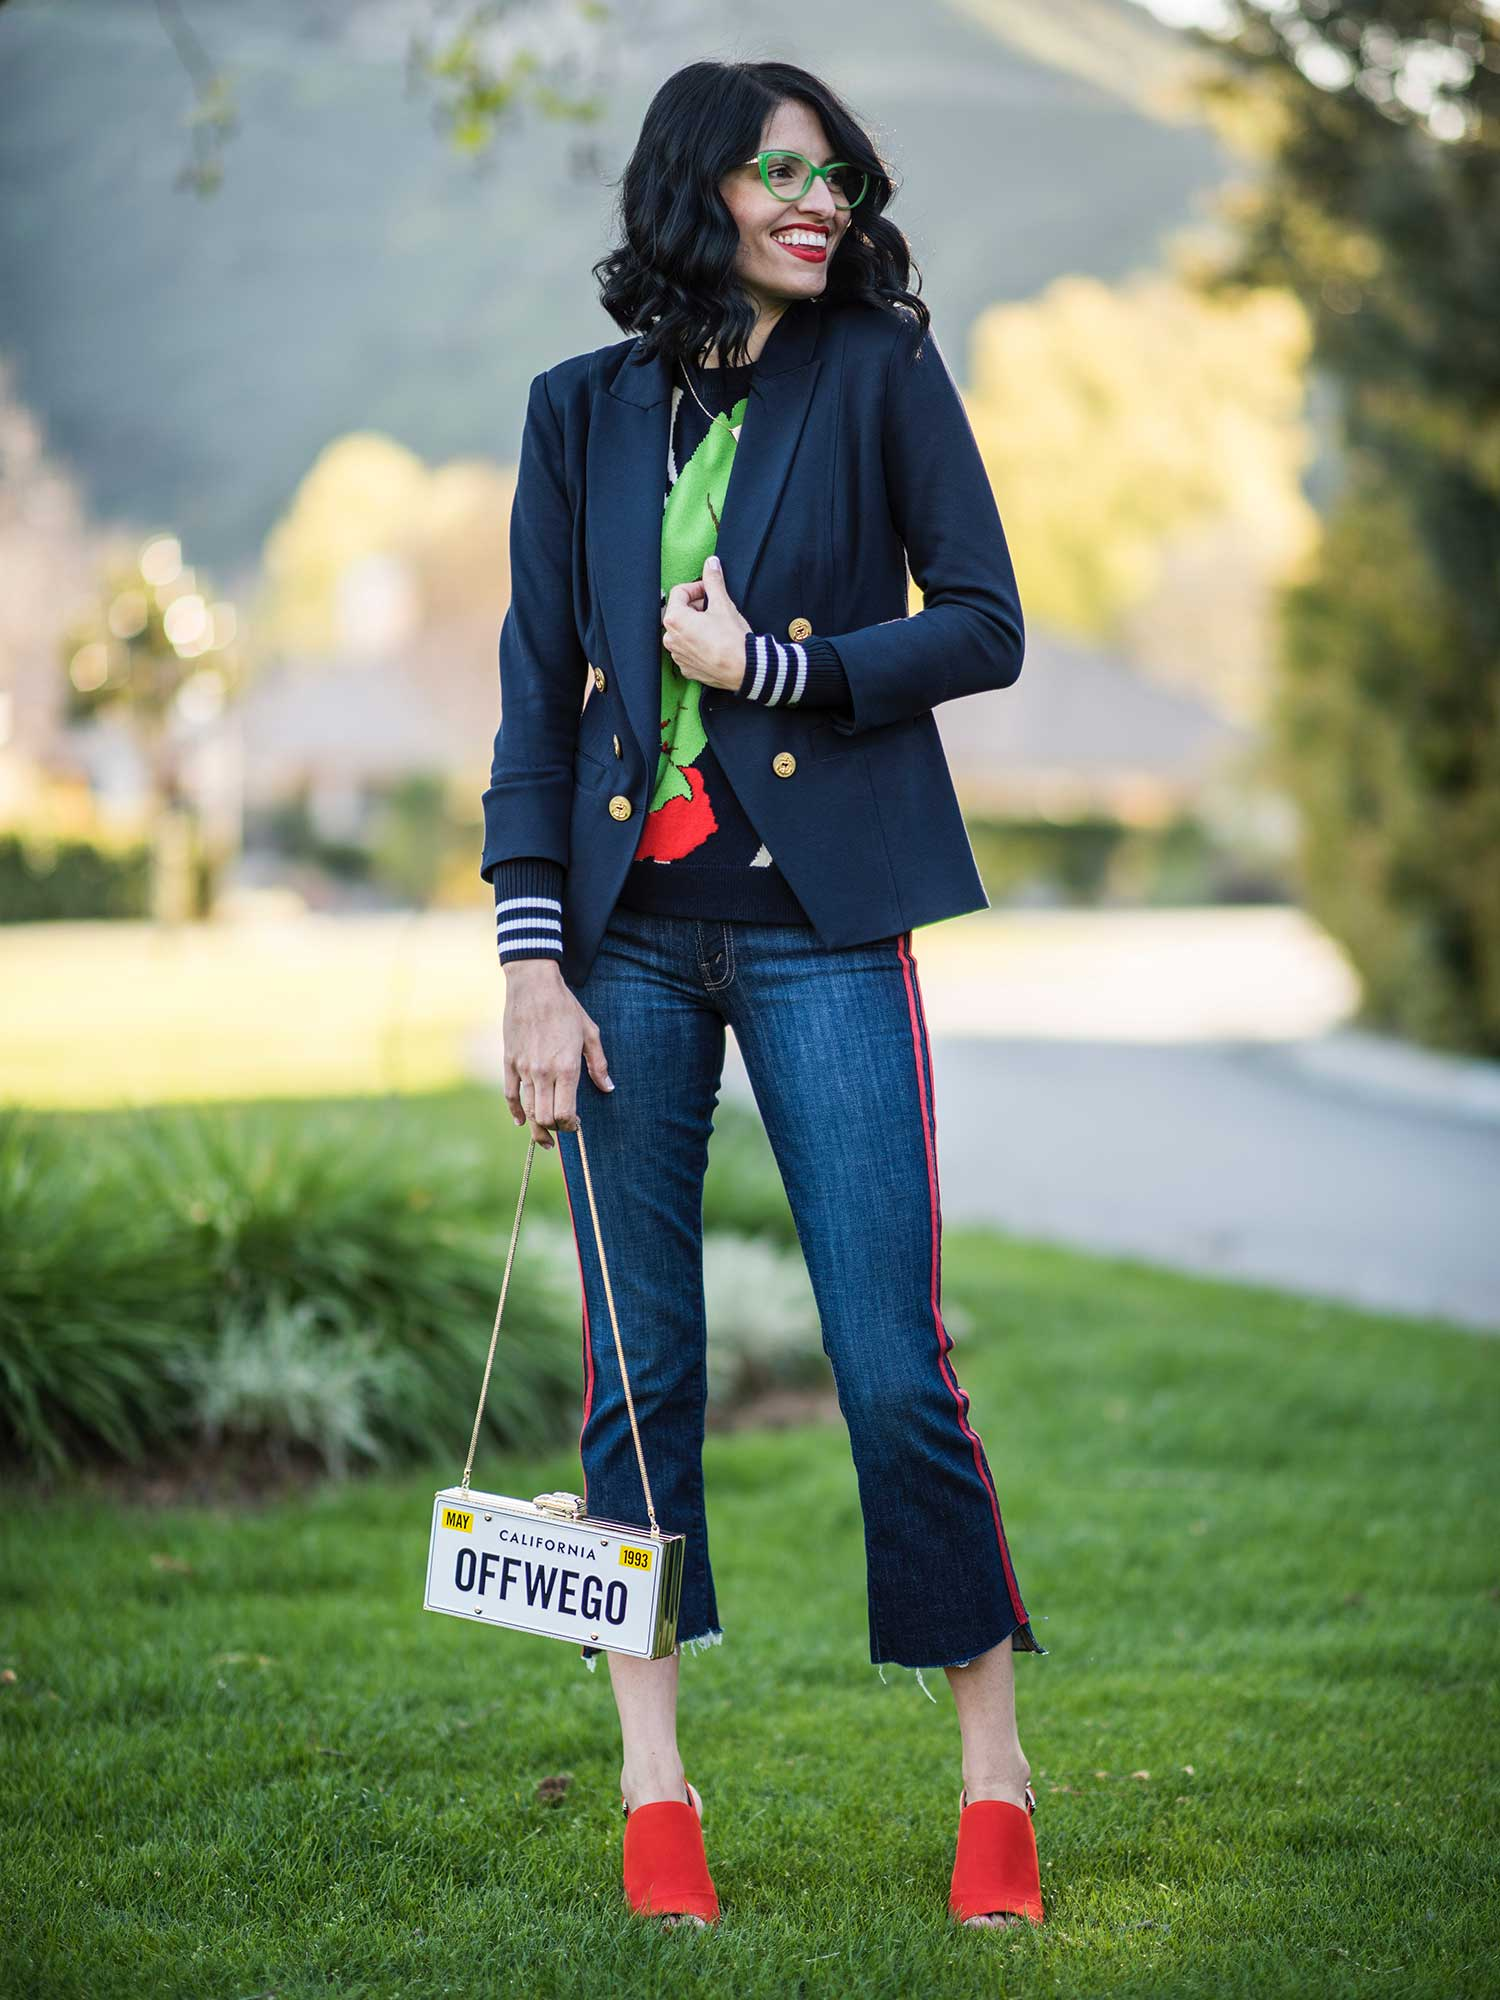 Jenna-Pilant-Style-Blogger-San-Diego-Lucky-Little-Mustardseed-Cabi-Clothing-Grand-Slam-Blazer-5